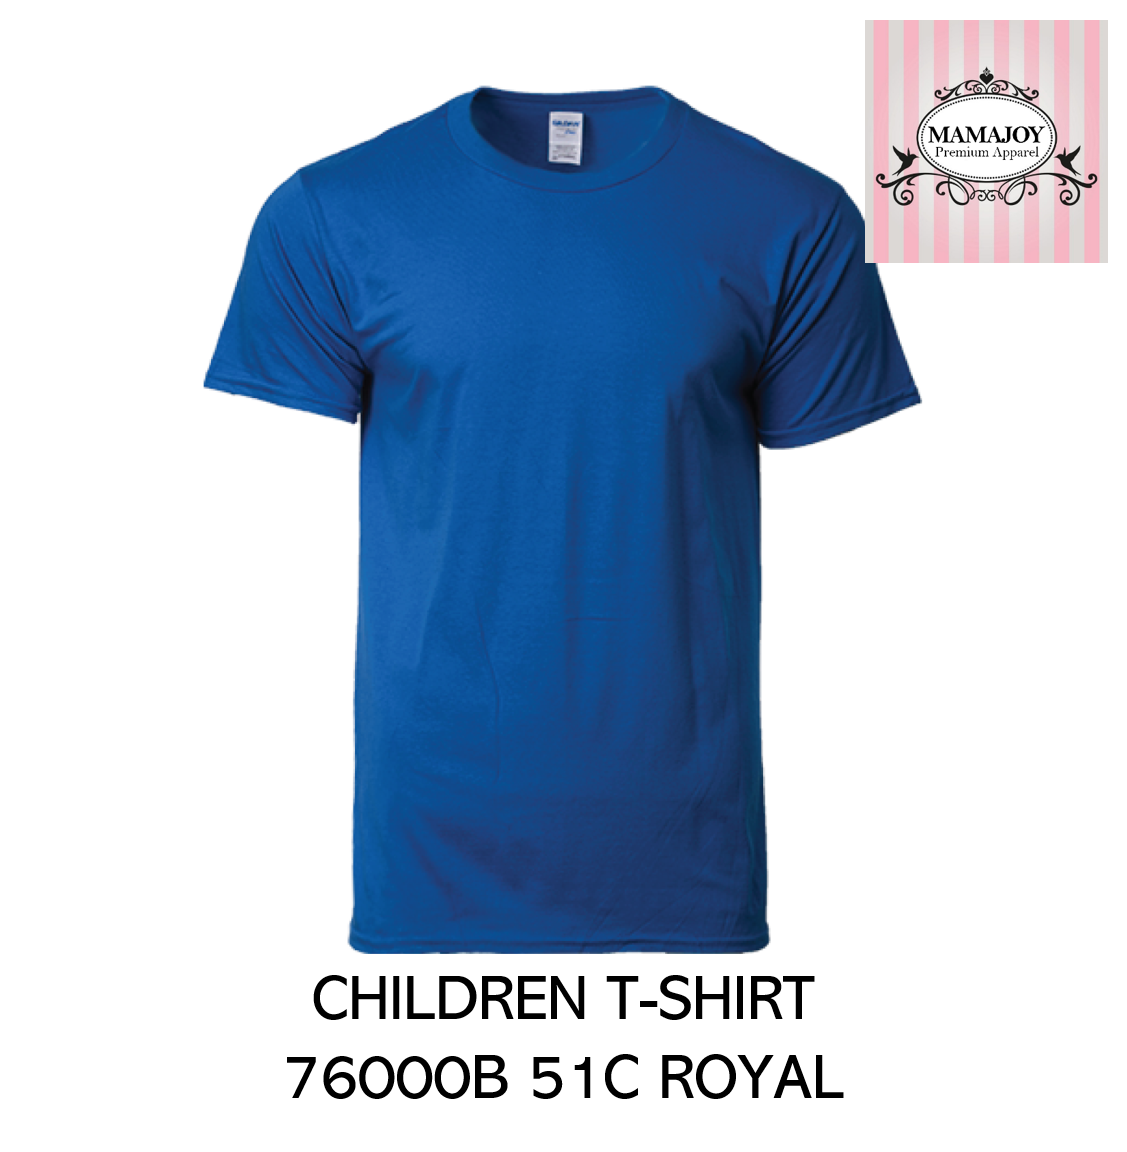 GILDAN BLACK CHILDRENS BOYS GIRLS KIDS T SHIRT 100/% COTTON ALL SIZES